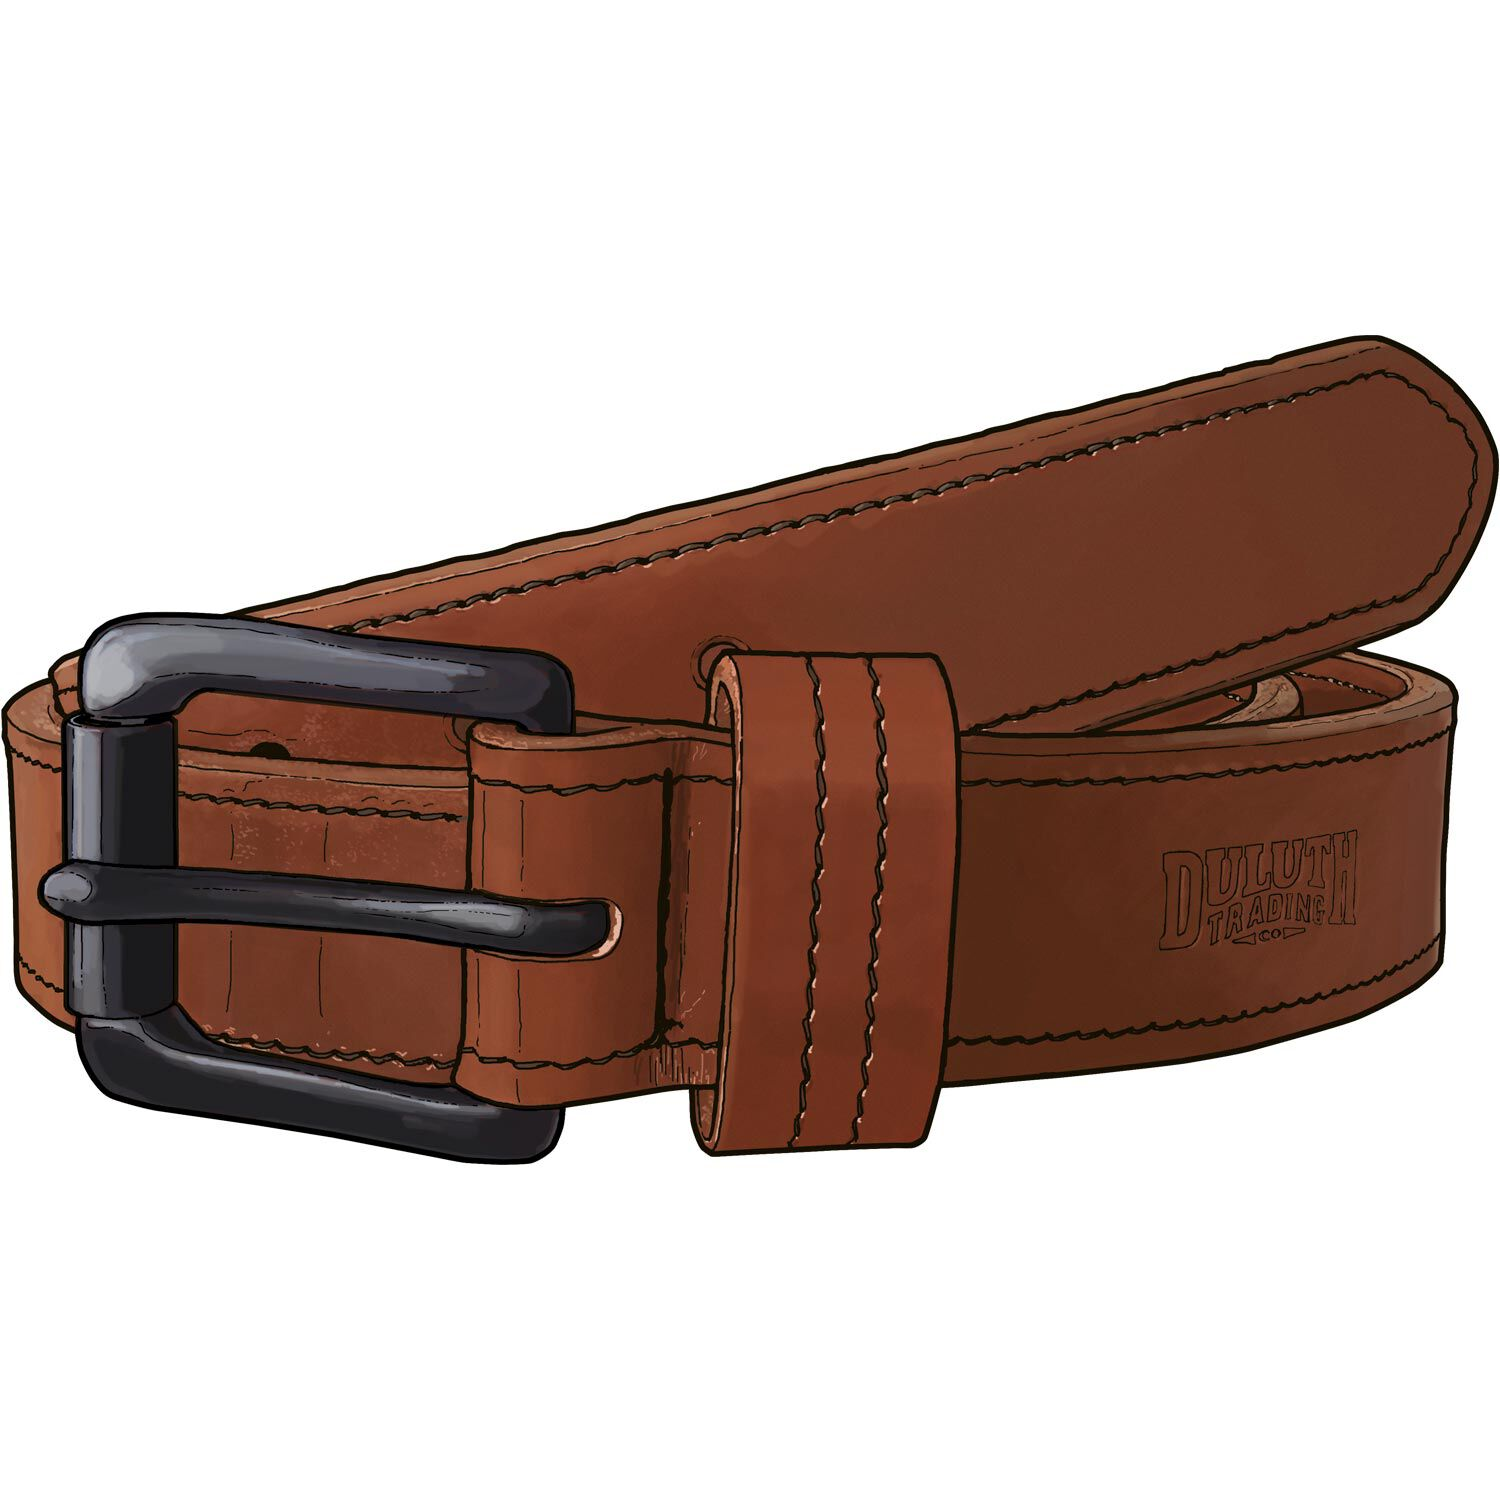 Casual Core Pant Belt in Cognac Style /& Co